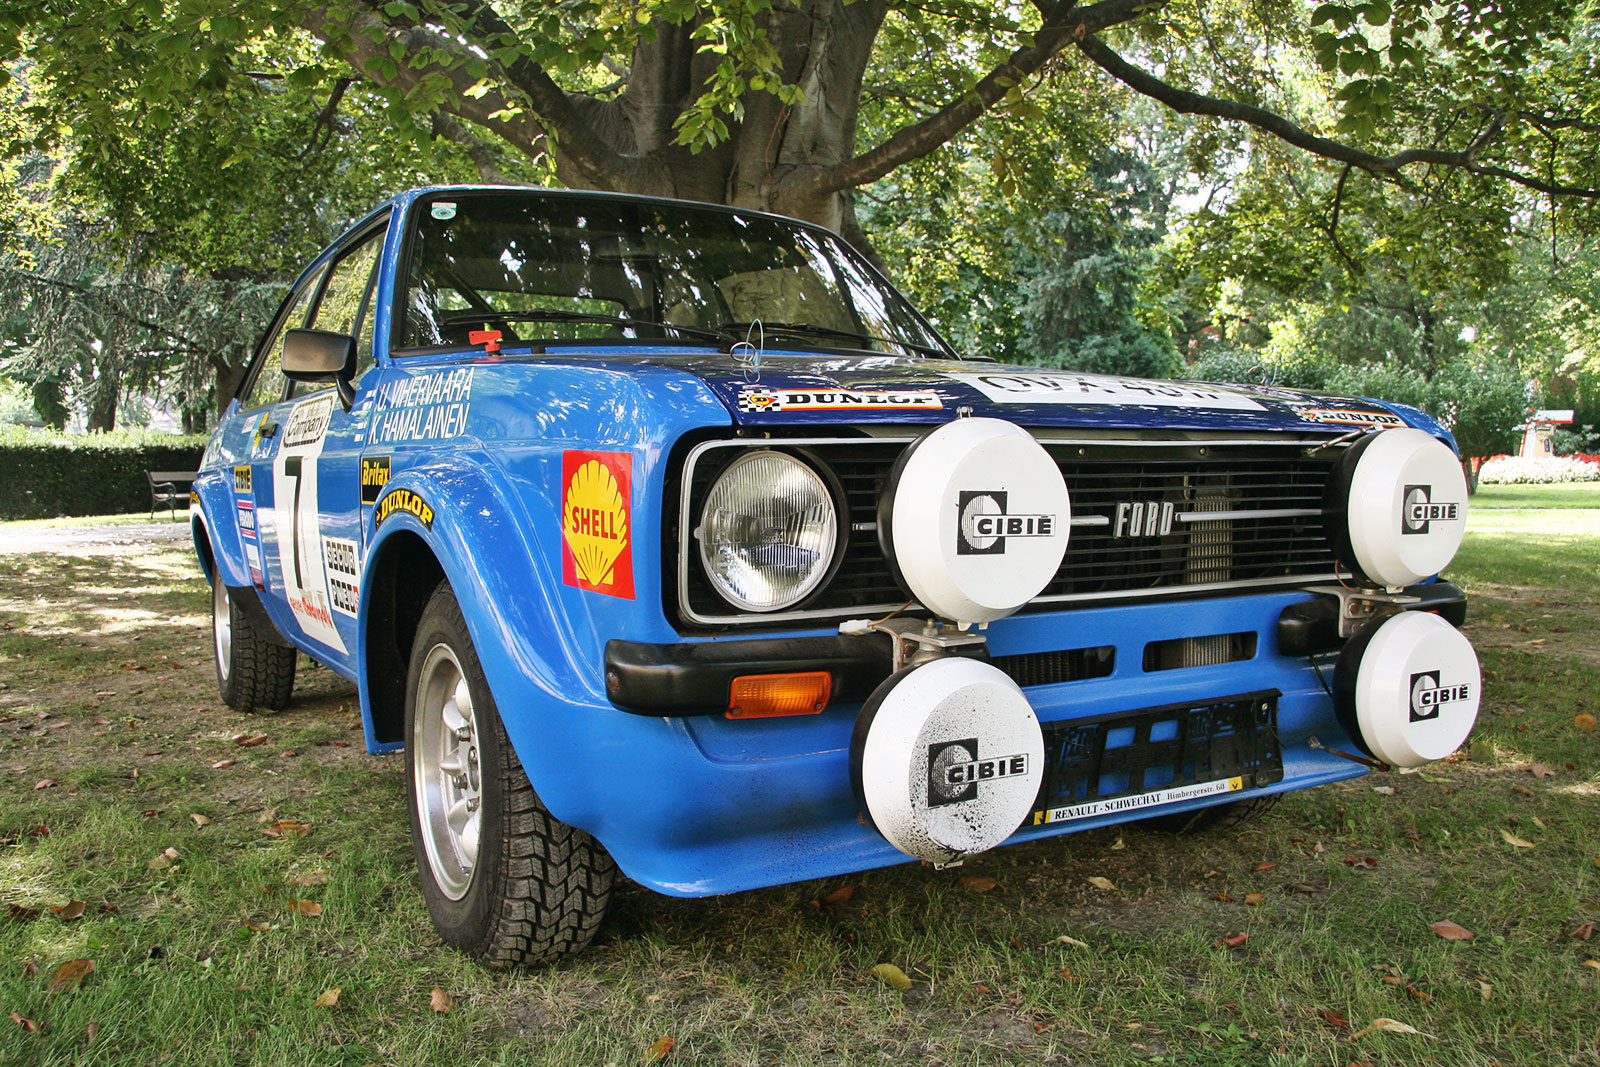 Ford Escort MK2 2000 RS - the schwab collection - vintage rally cars